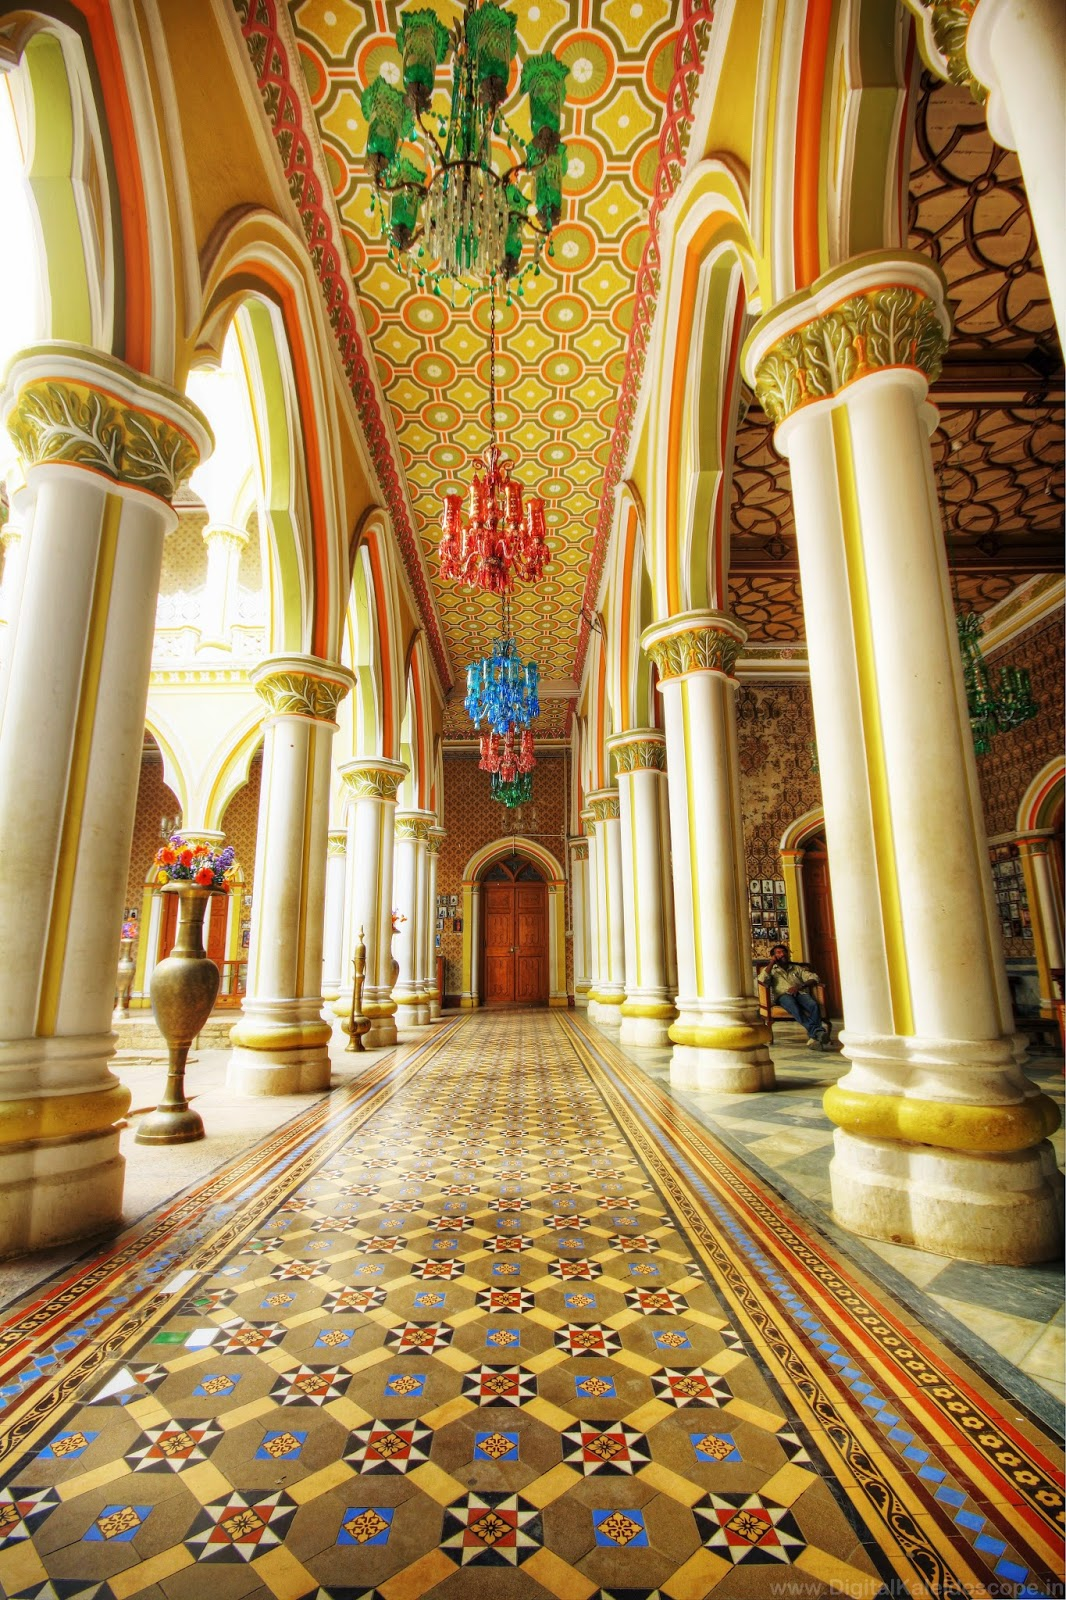 THE GRAND BANGALORE PALACE